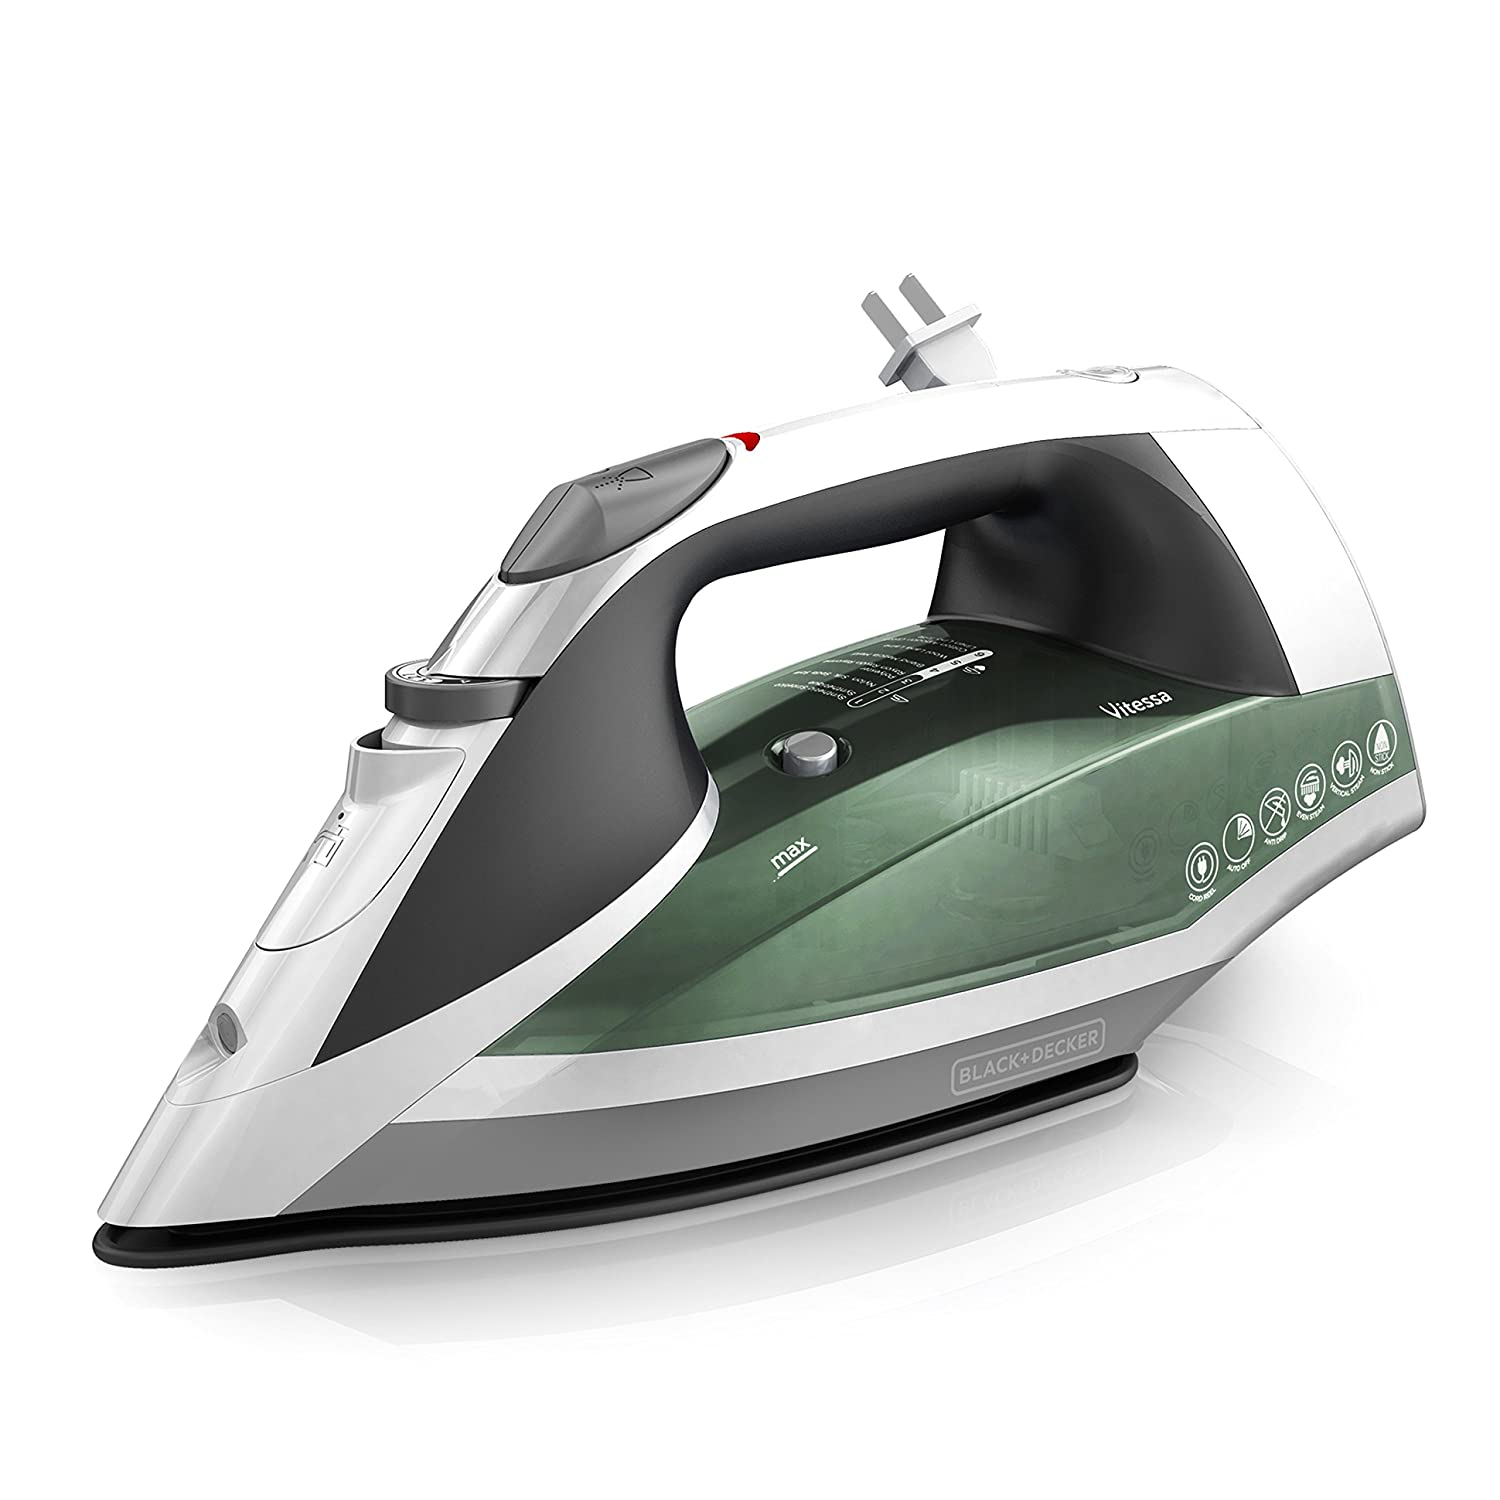 BLACK+DECKER Vitessa Advanced Steam Iron with TrueGlide Nonstick Soleplate, Sage, IR2020